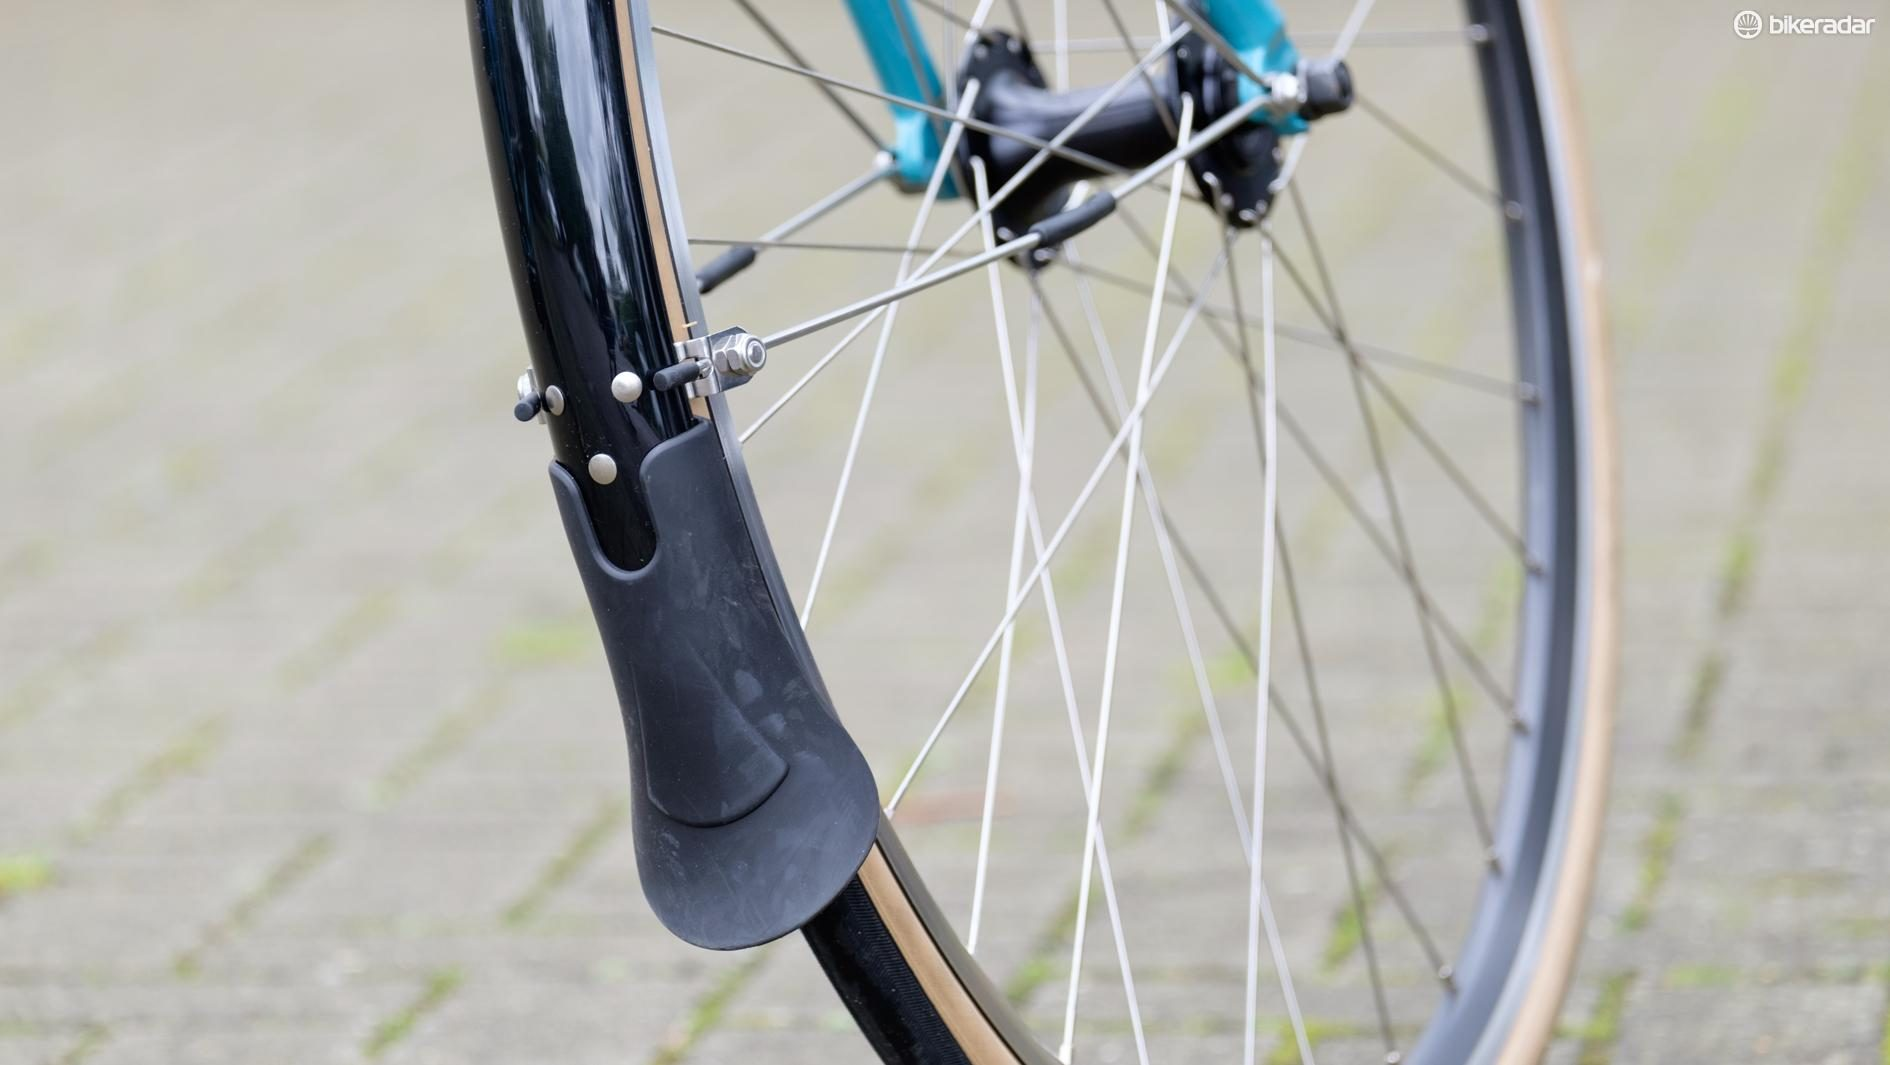 hight resolution of genesis specced super long full length mudguards for year round practicality